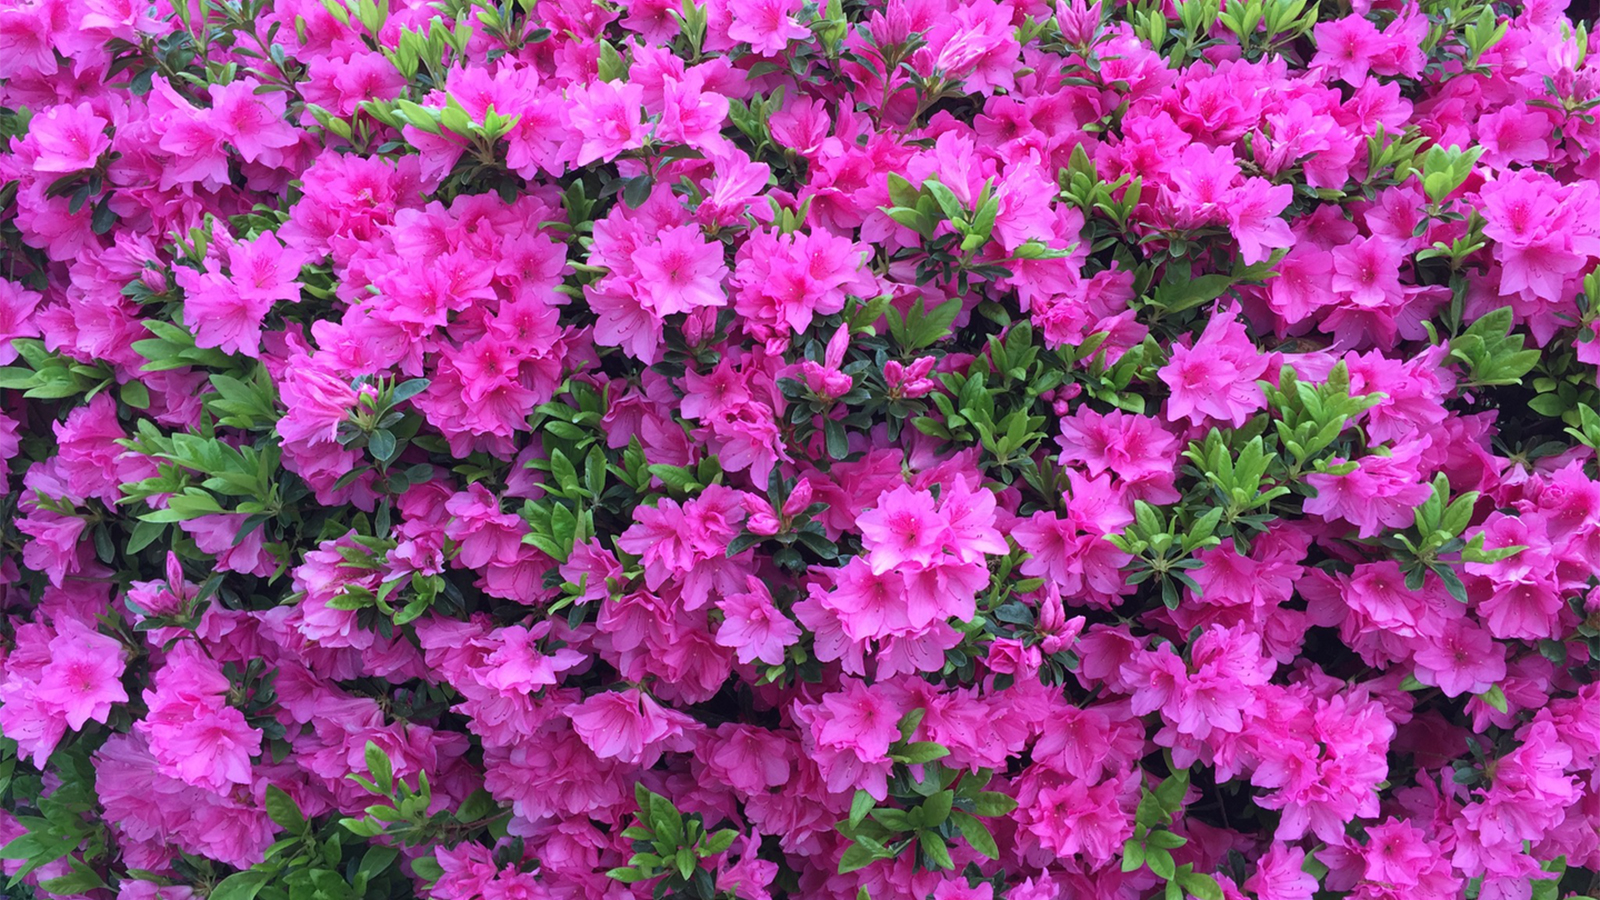 How Azaleas Became the Signature Flowers of the South | HowStuffWorks